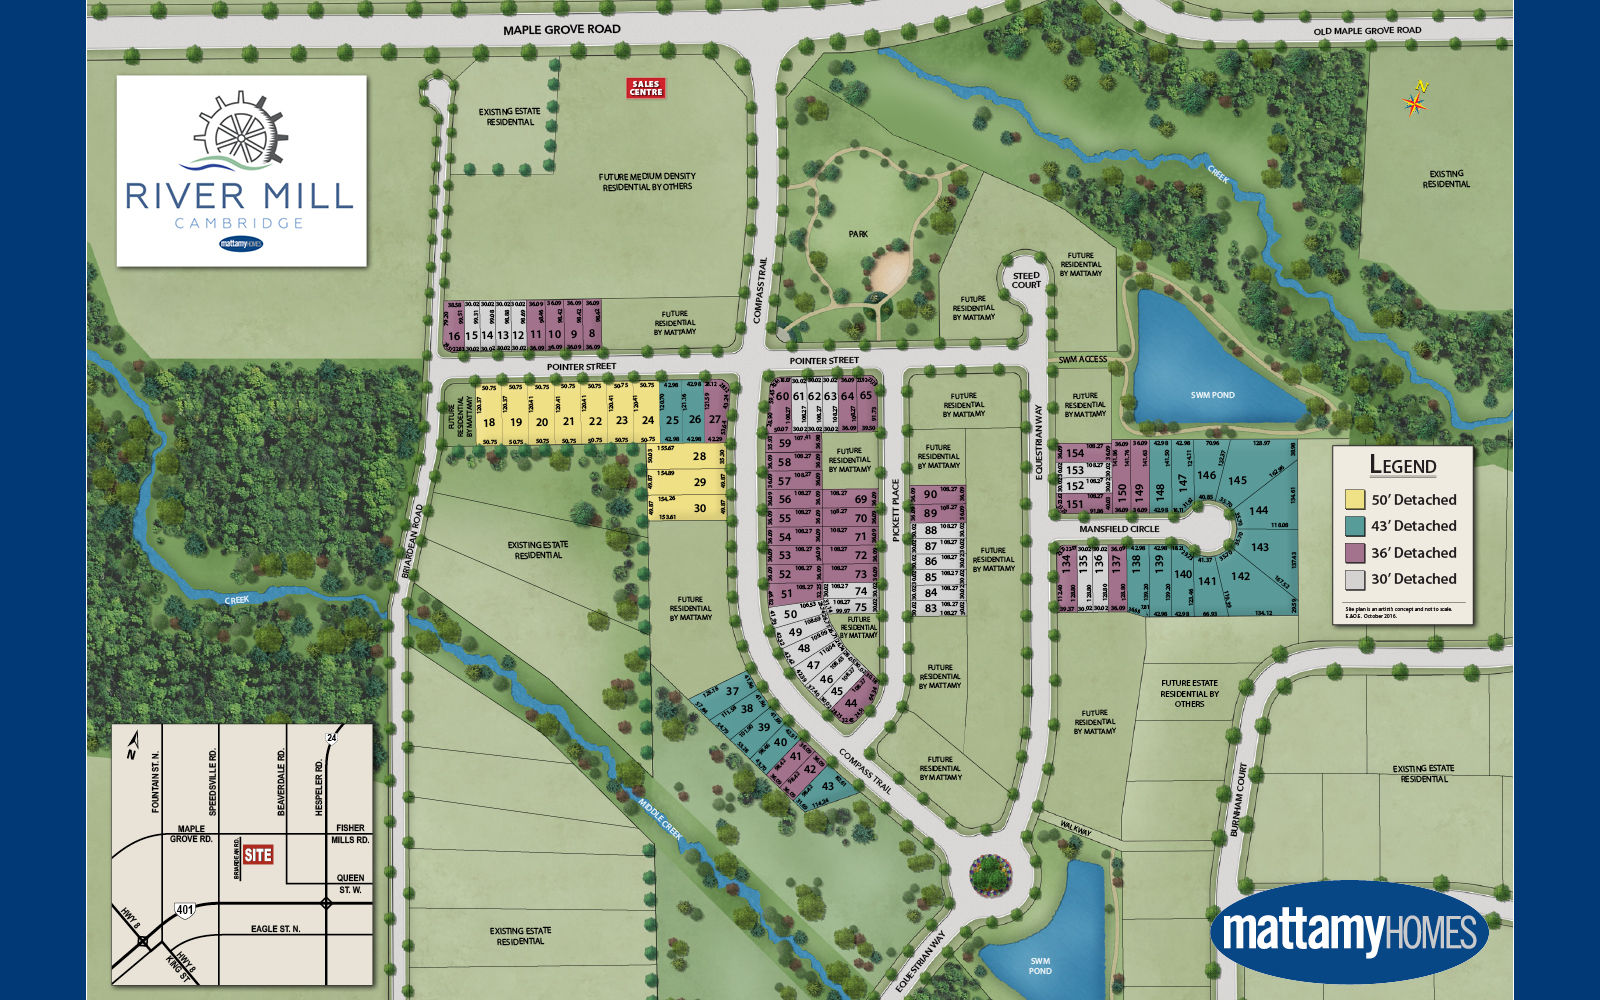 Site plan for River Mill in Cambridge, Ontario